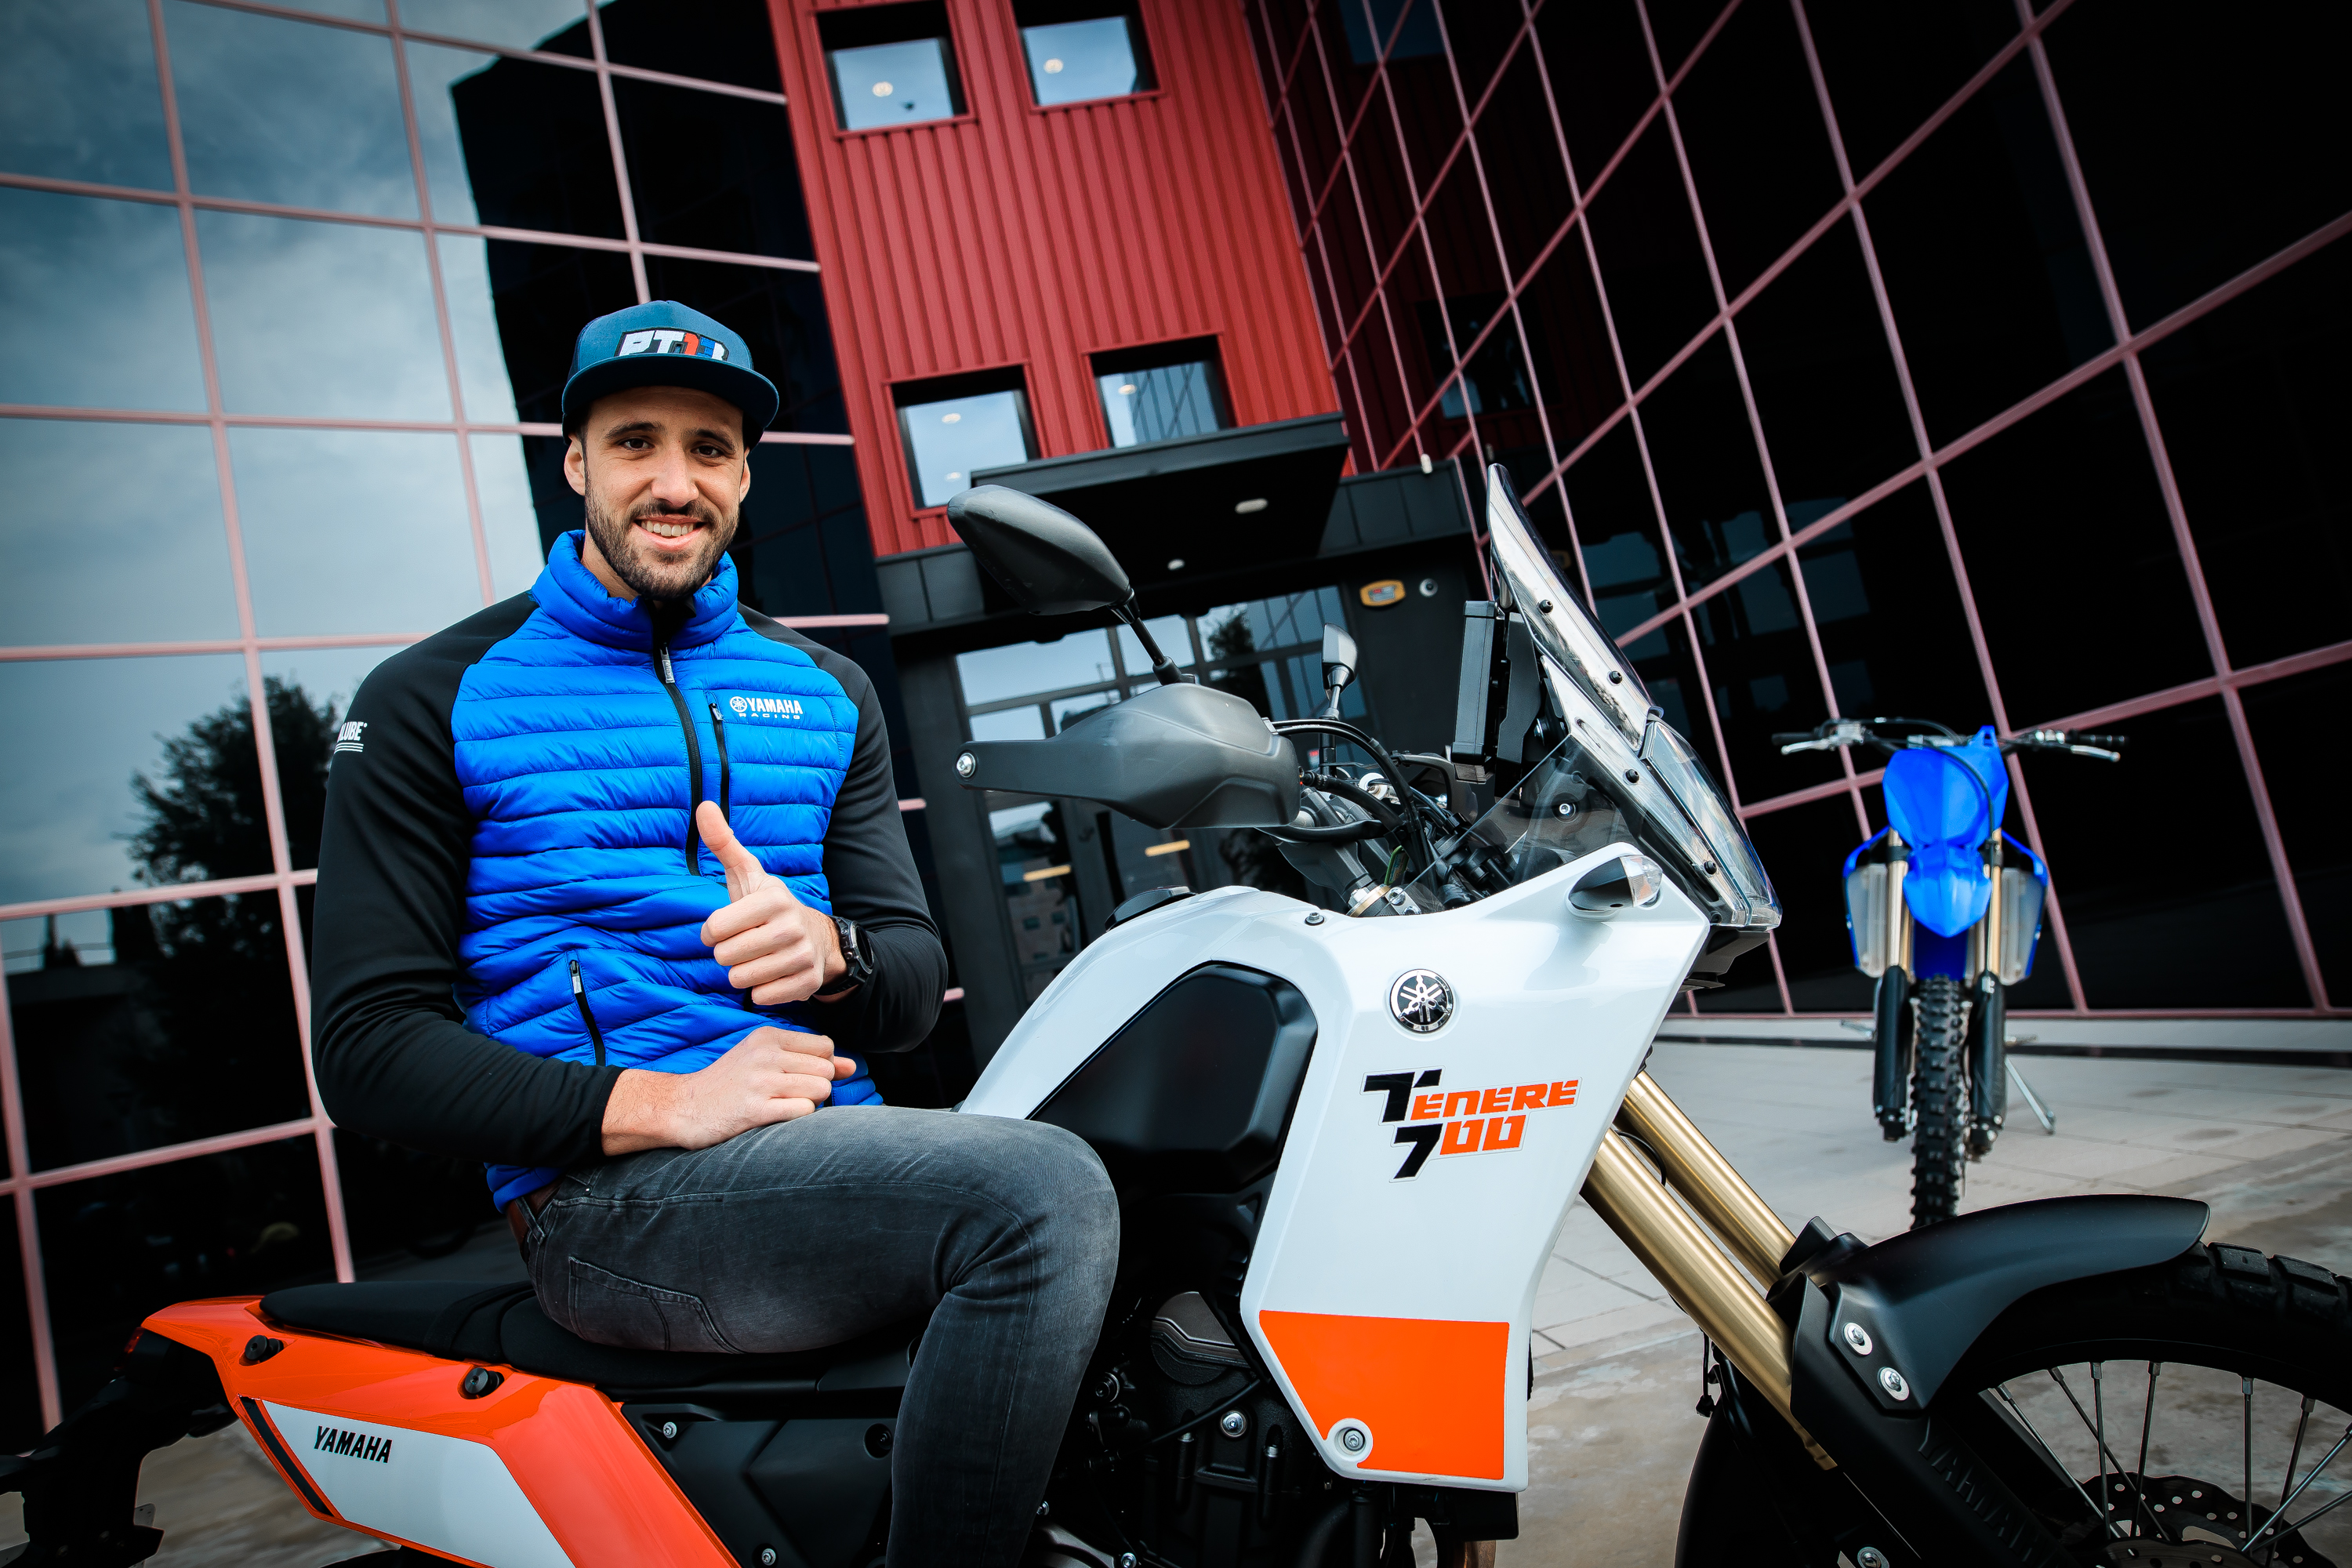 Pol Tarres moves to Yamaha – Spaniard to race two-stroke YZ in Hard Enduro